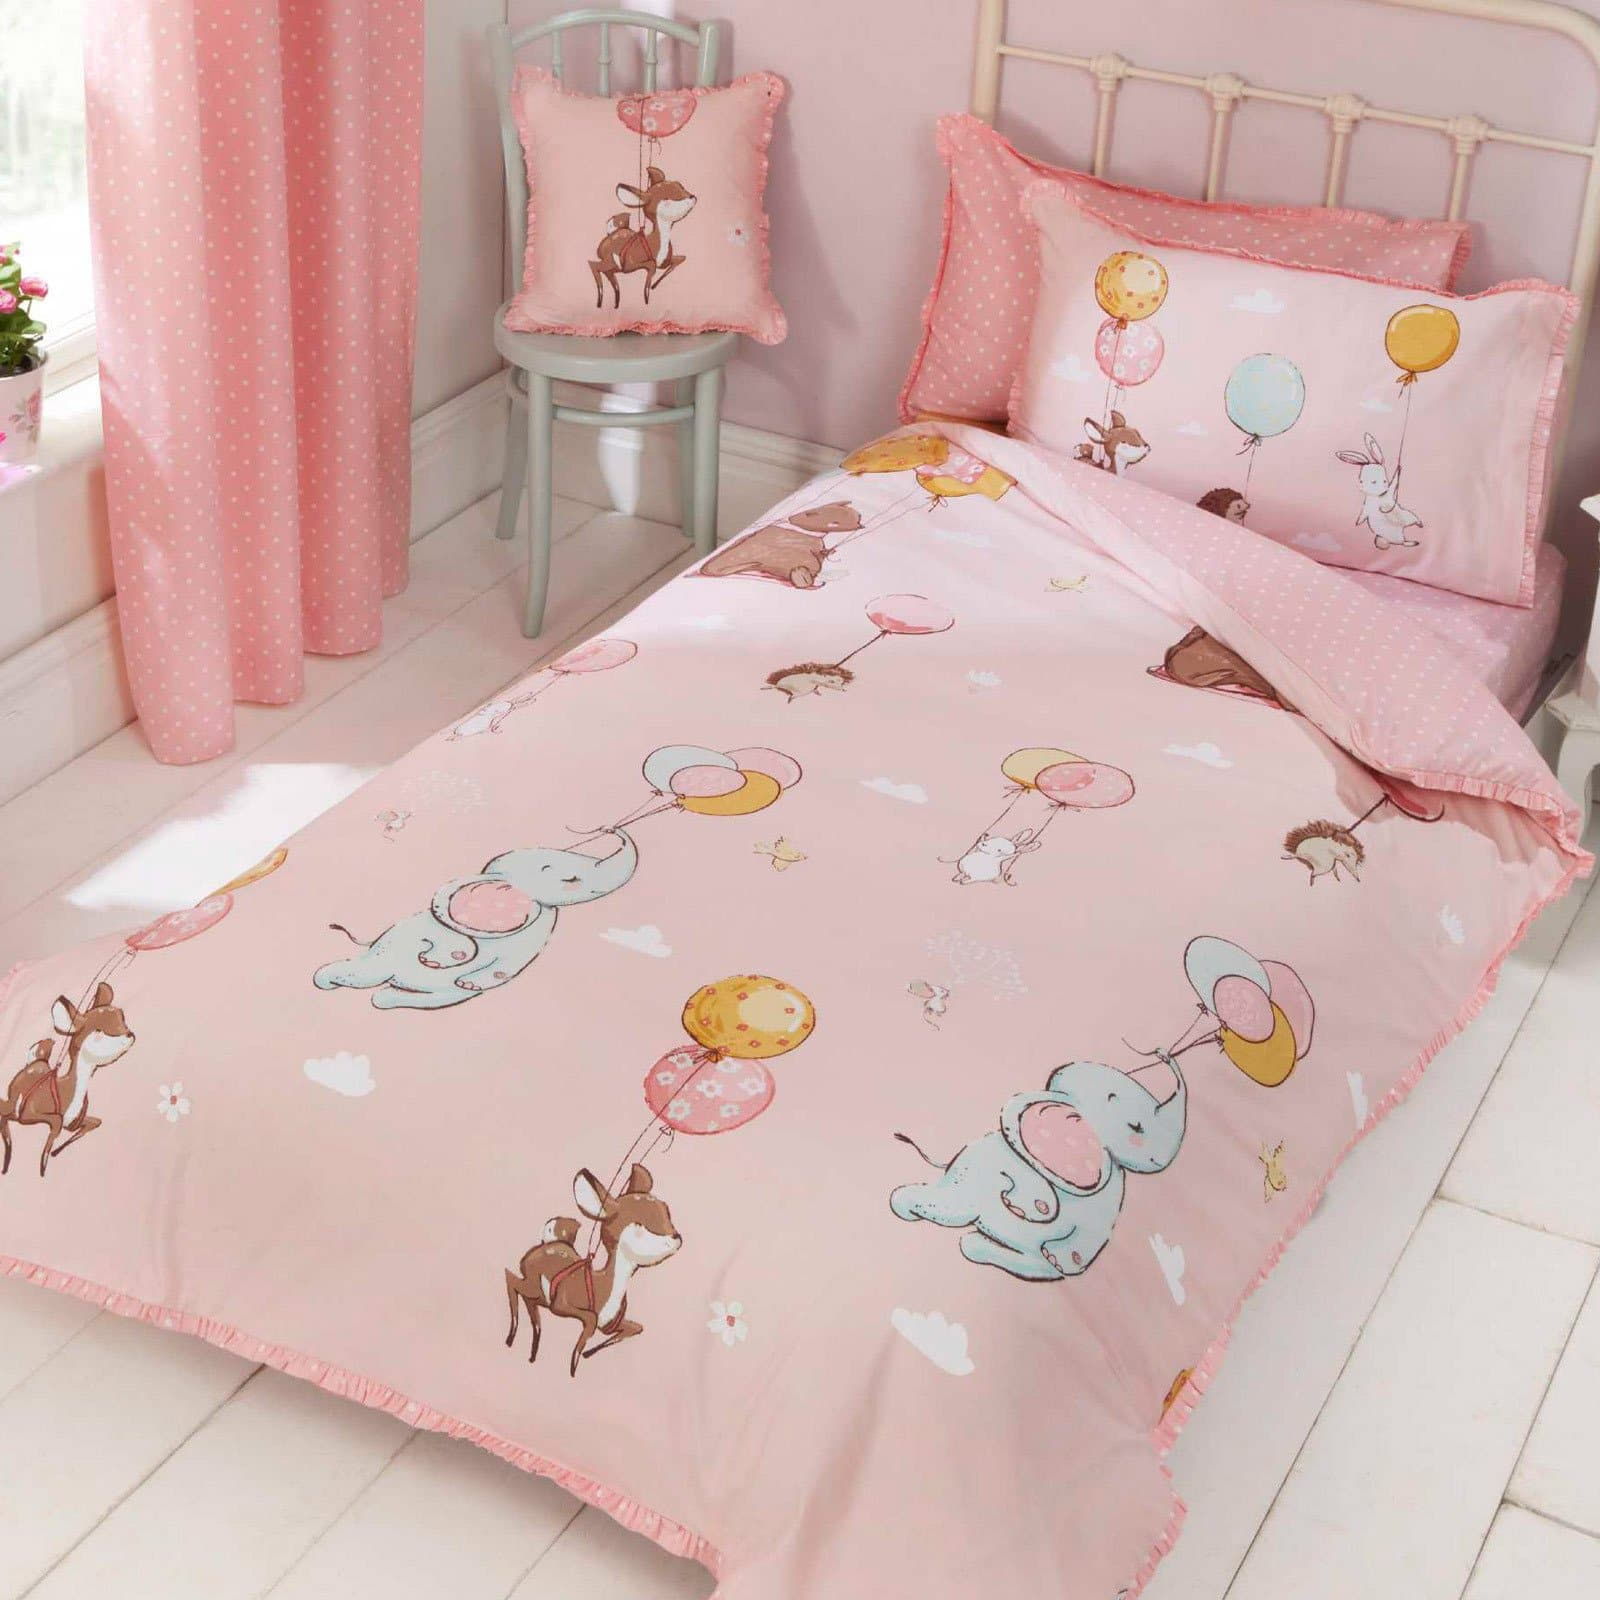 Float Away Frilly Pink Kids Duvet Cover Set - Single - Ideal Textiles